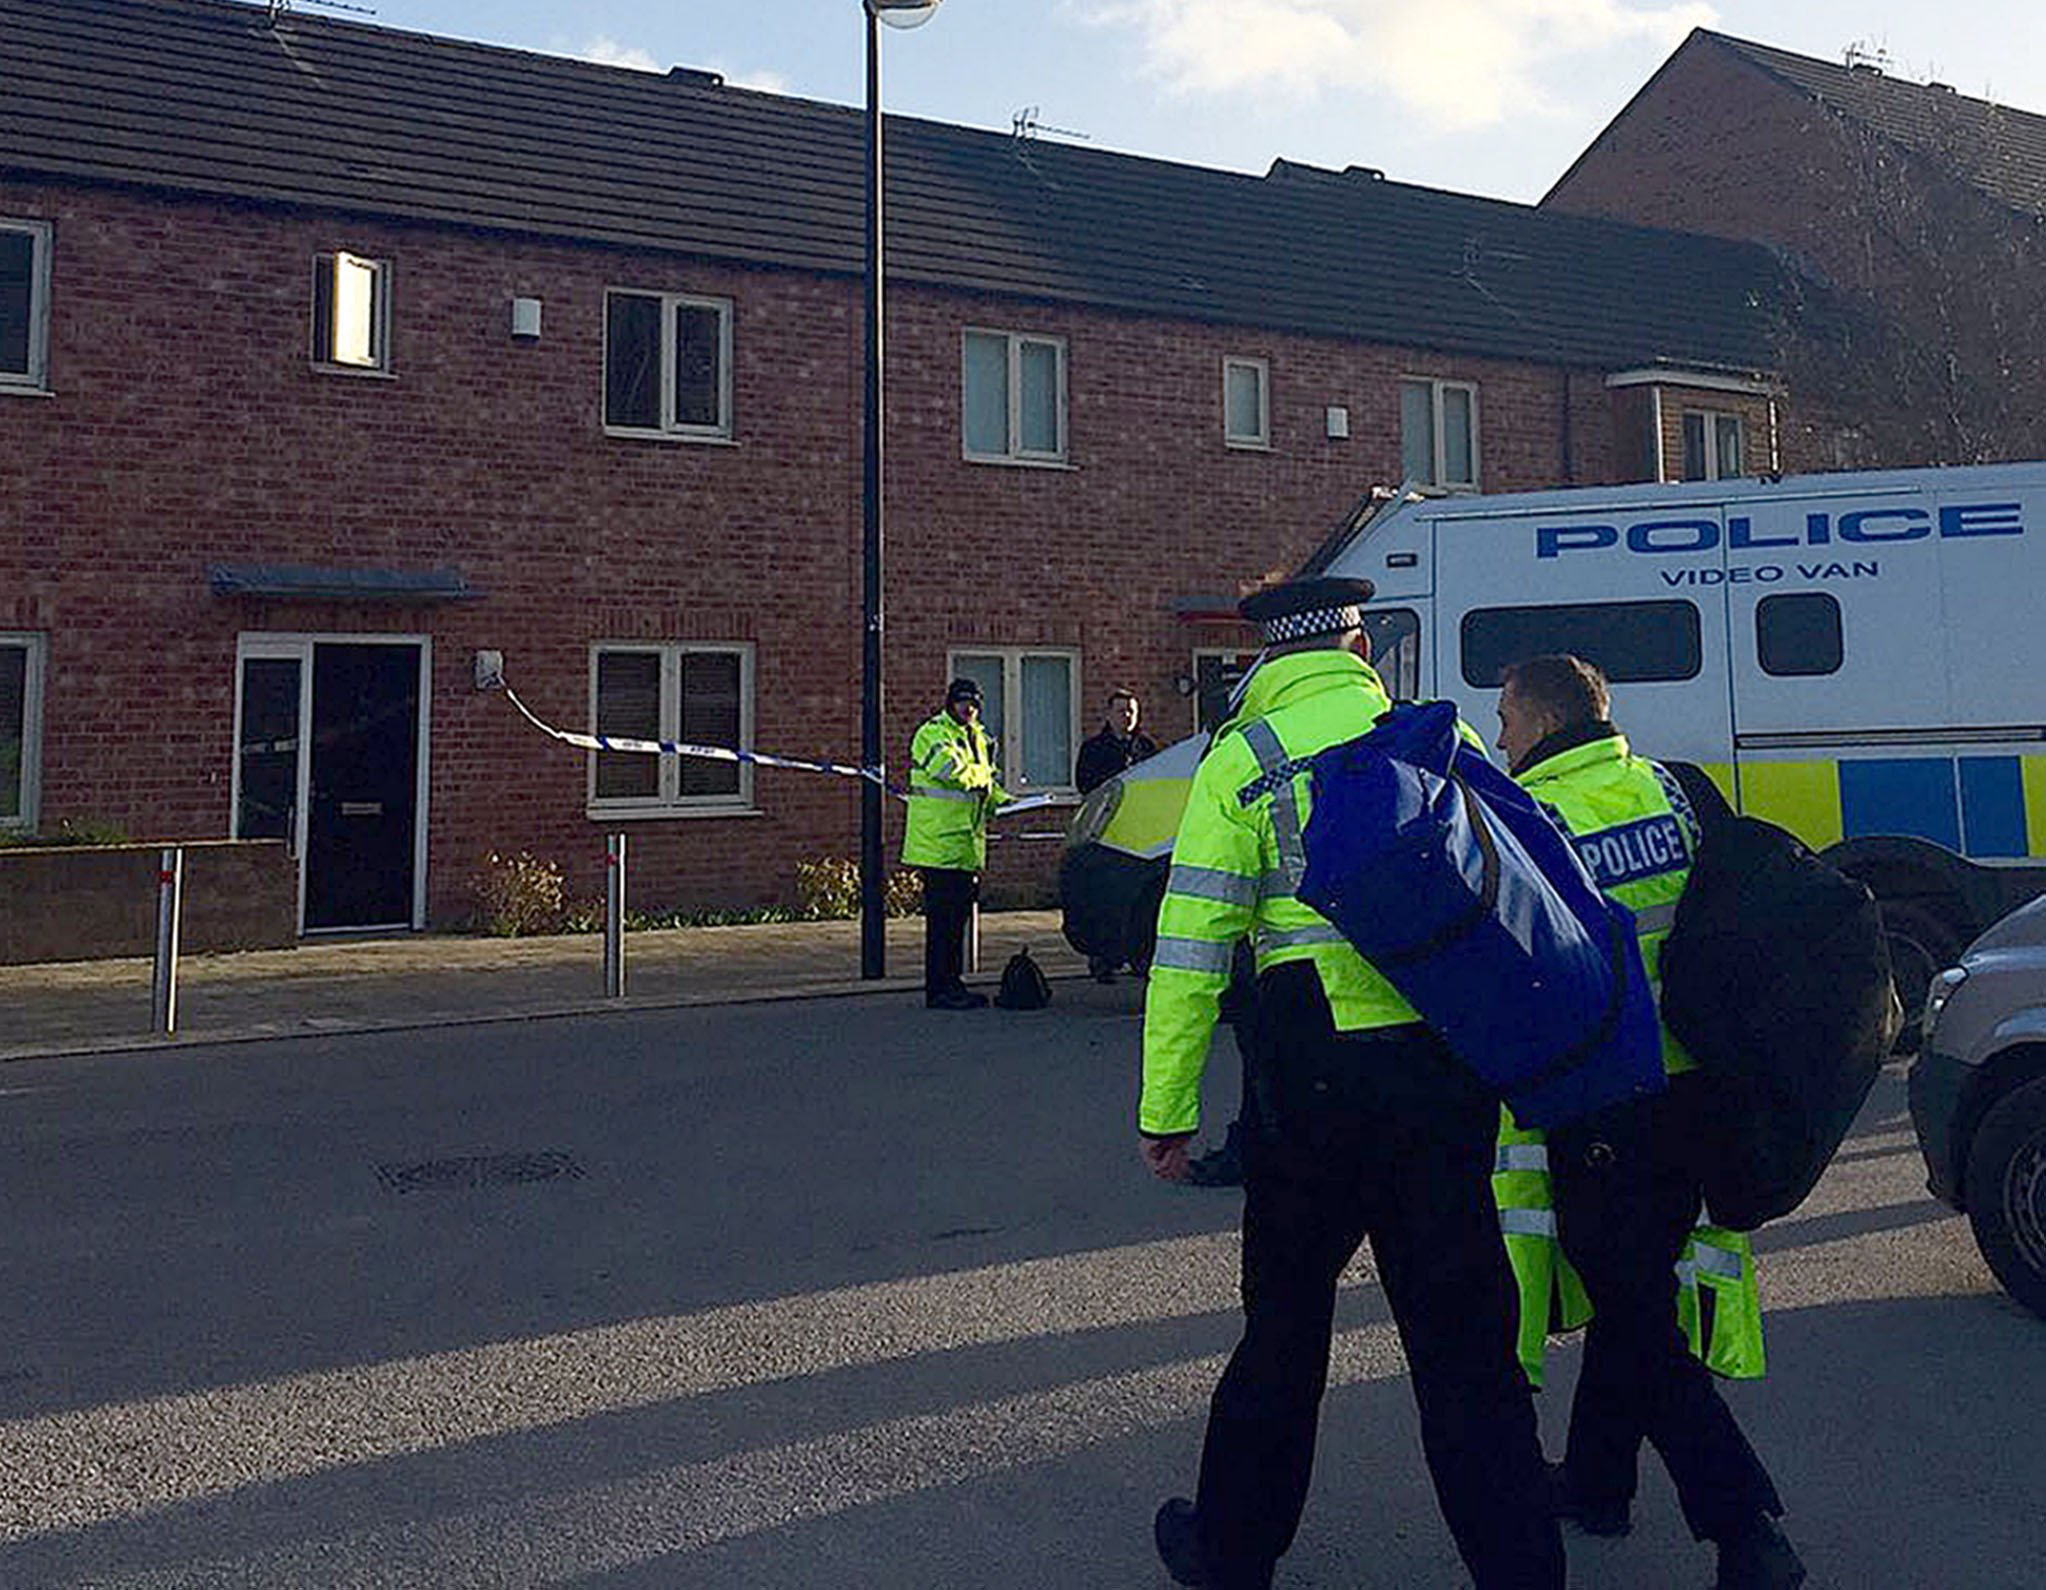 BEST QUALITY AVAILABLE Police at the scene in Beeston Way, Allerton Bywater near Leeds, after three people, reported to be a woman and two children, have been found dead in a house. PRESS ASSOCIATION Photo. Picture date: Tuesday February 2, 2016. West Yorkshire Police officers were called to the address at 11:49am after concerns were raised for the occupants. See PA story POLICE Allerton. Photo credit should read: Amy Murphy/PA Wire